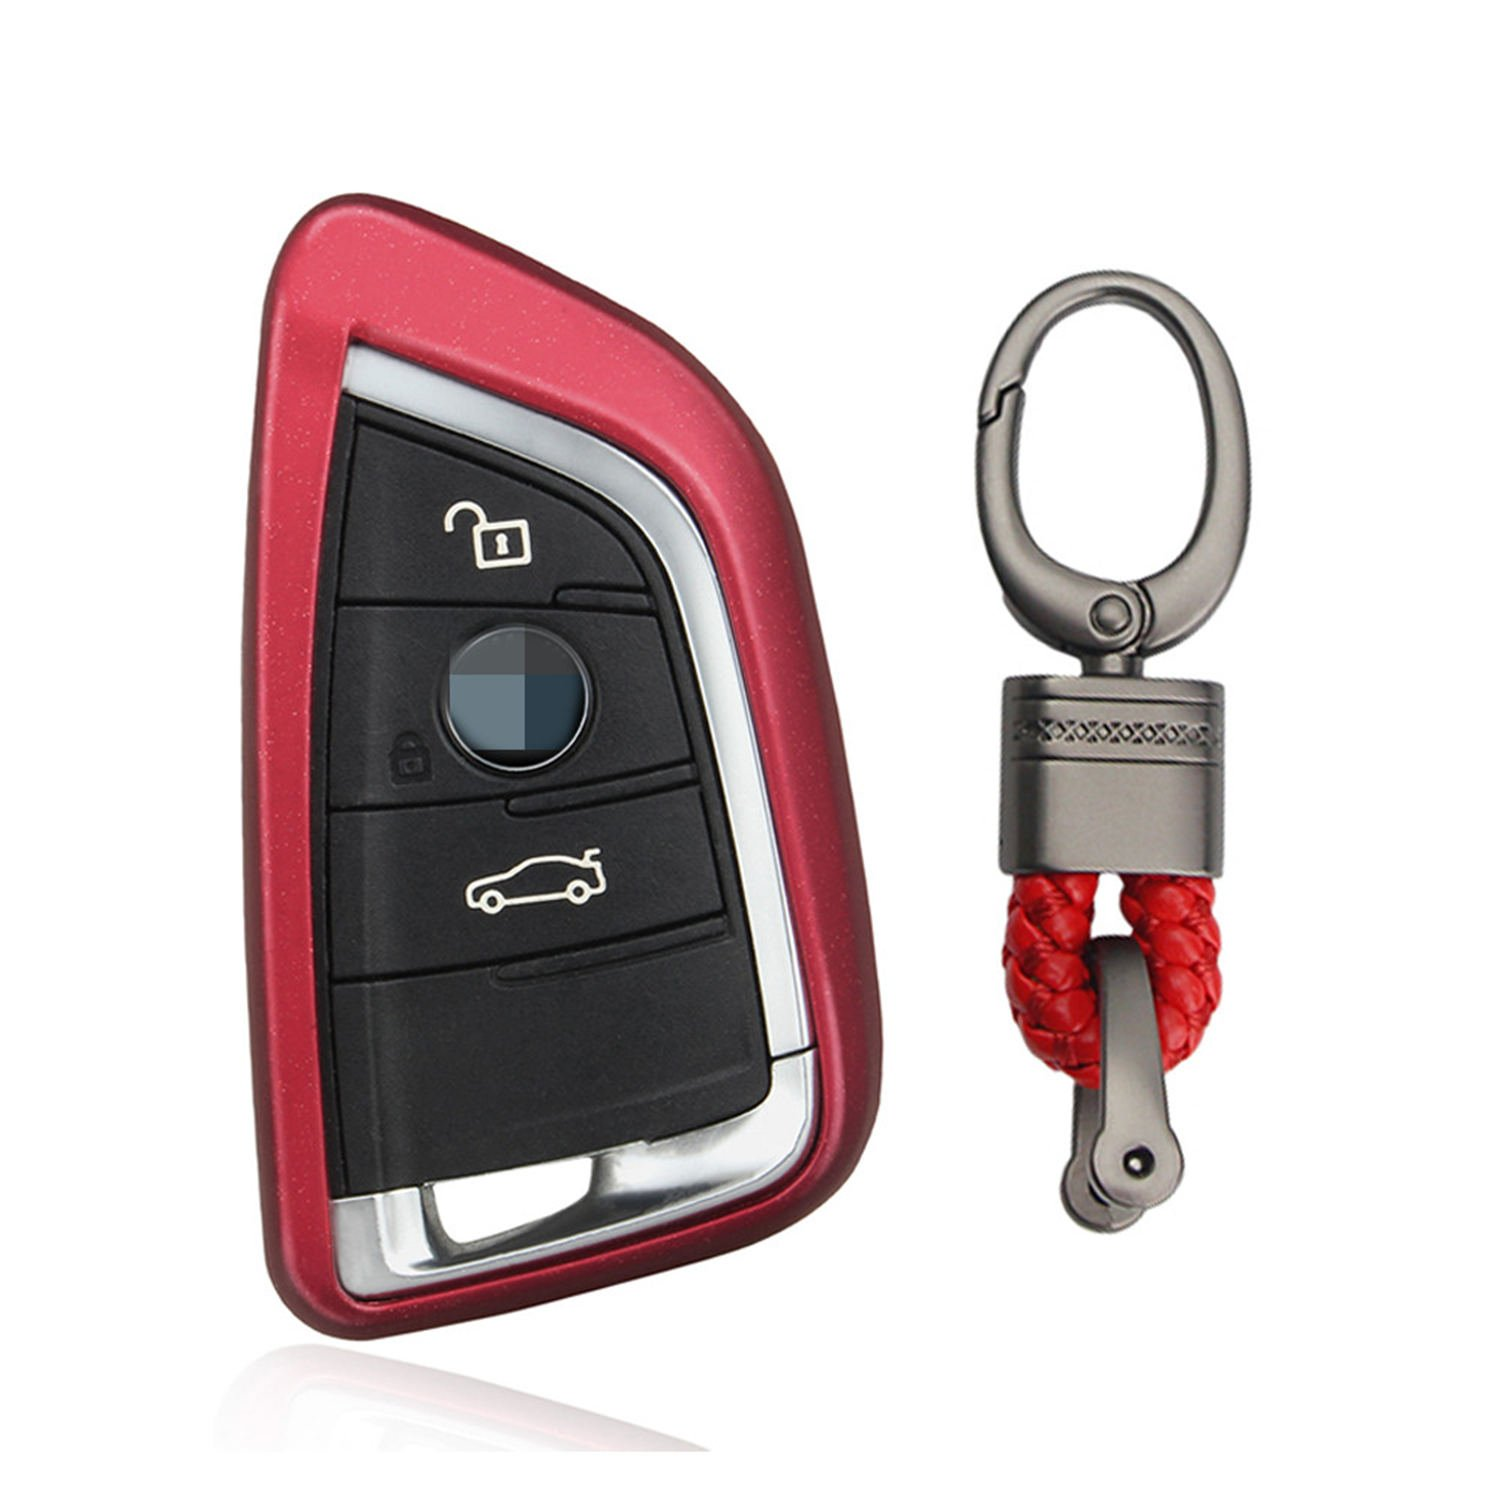 M.JVisun TPU Soft Silicone Case Cover Protector Shell For BMW Smart Key Fob, Car Remote Key Fob Case For BMW X1 X 5 X5M X6 X 6M BMW 2 Series BMW 7 Series Fob Remote Key With Keychain - Red